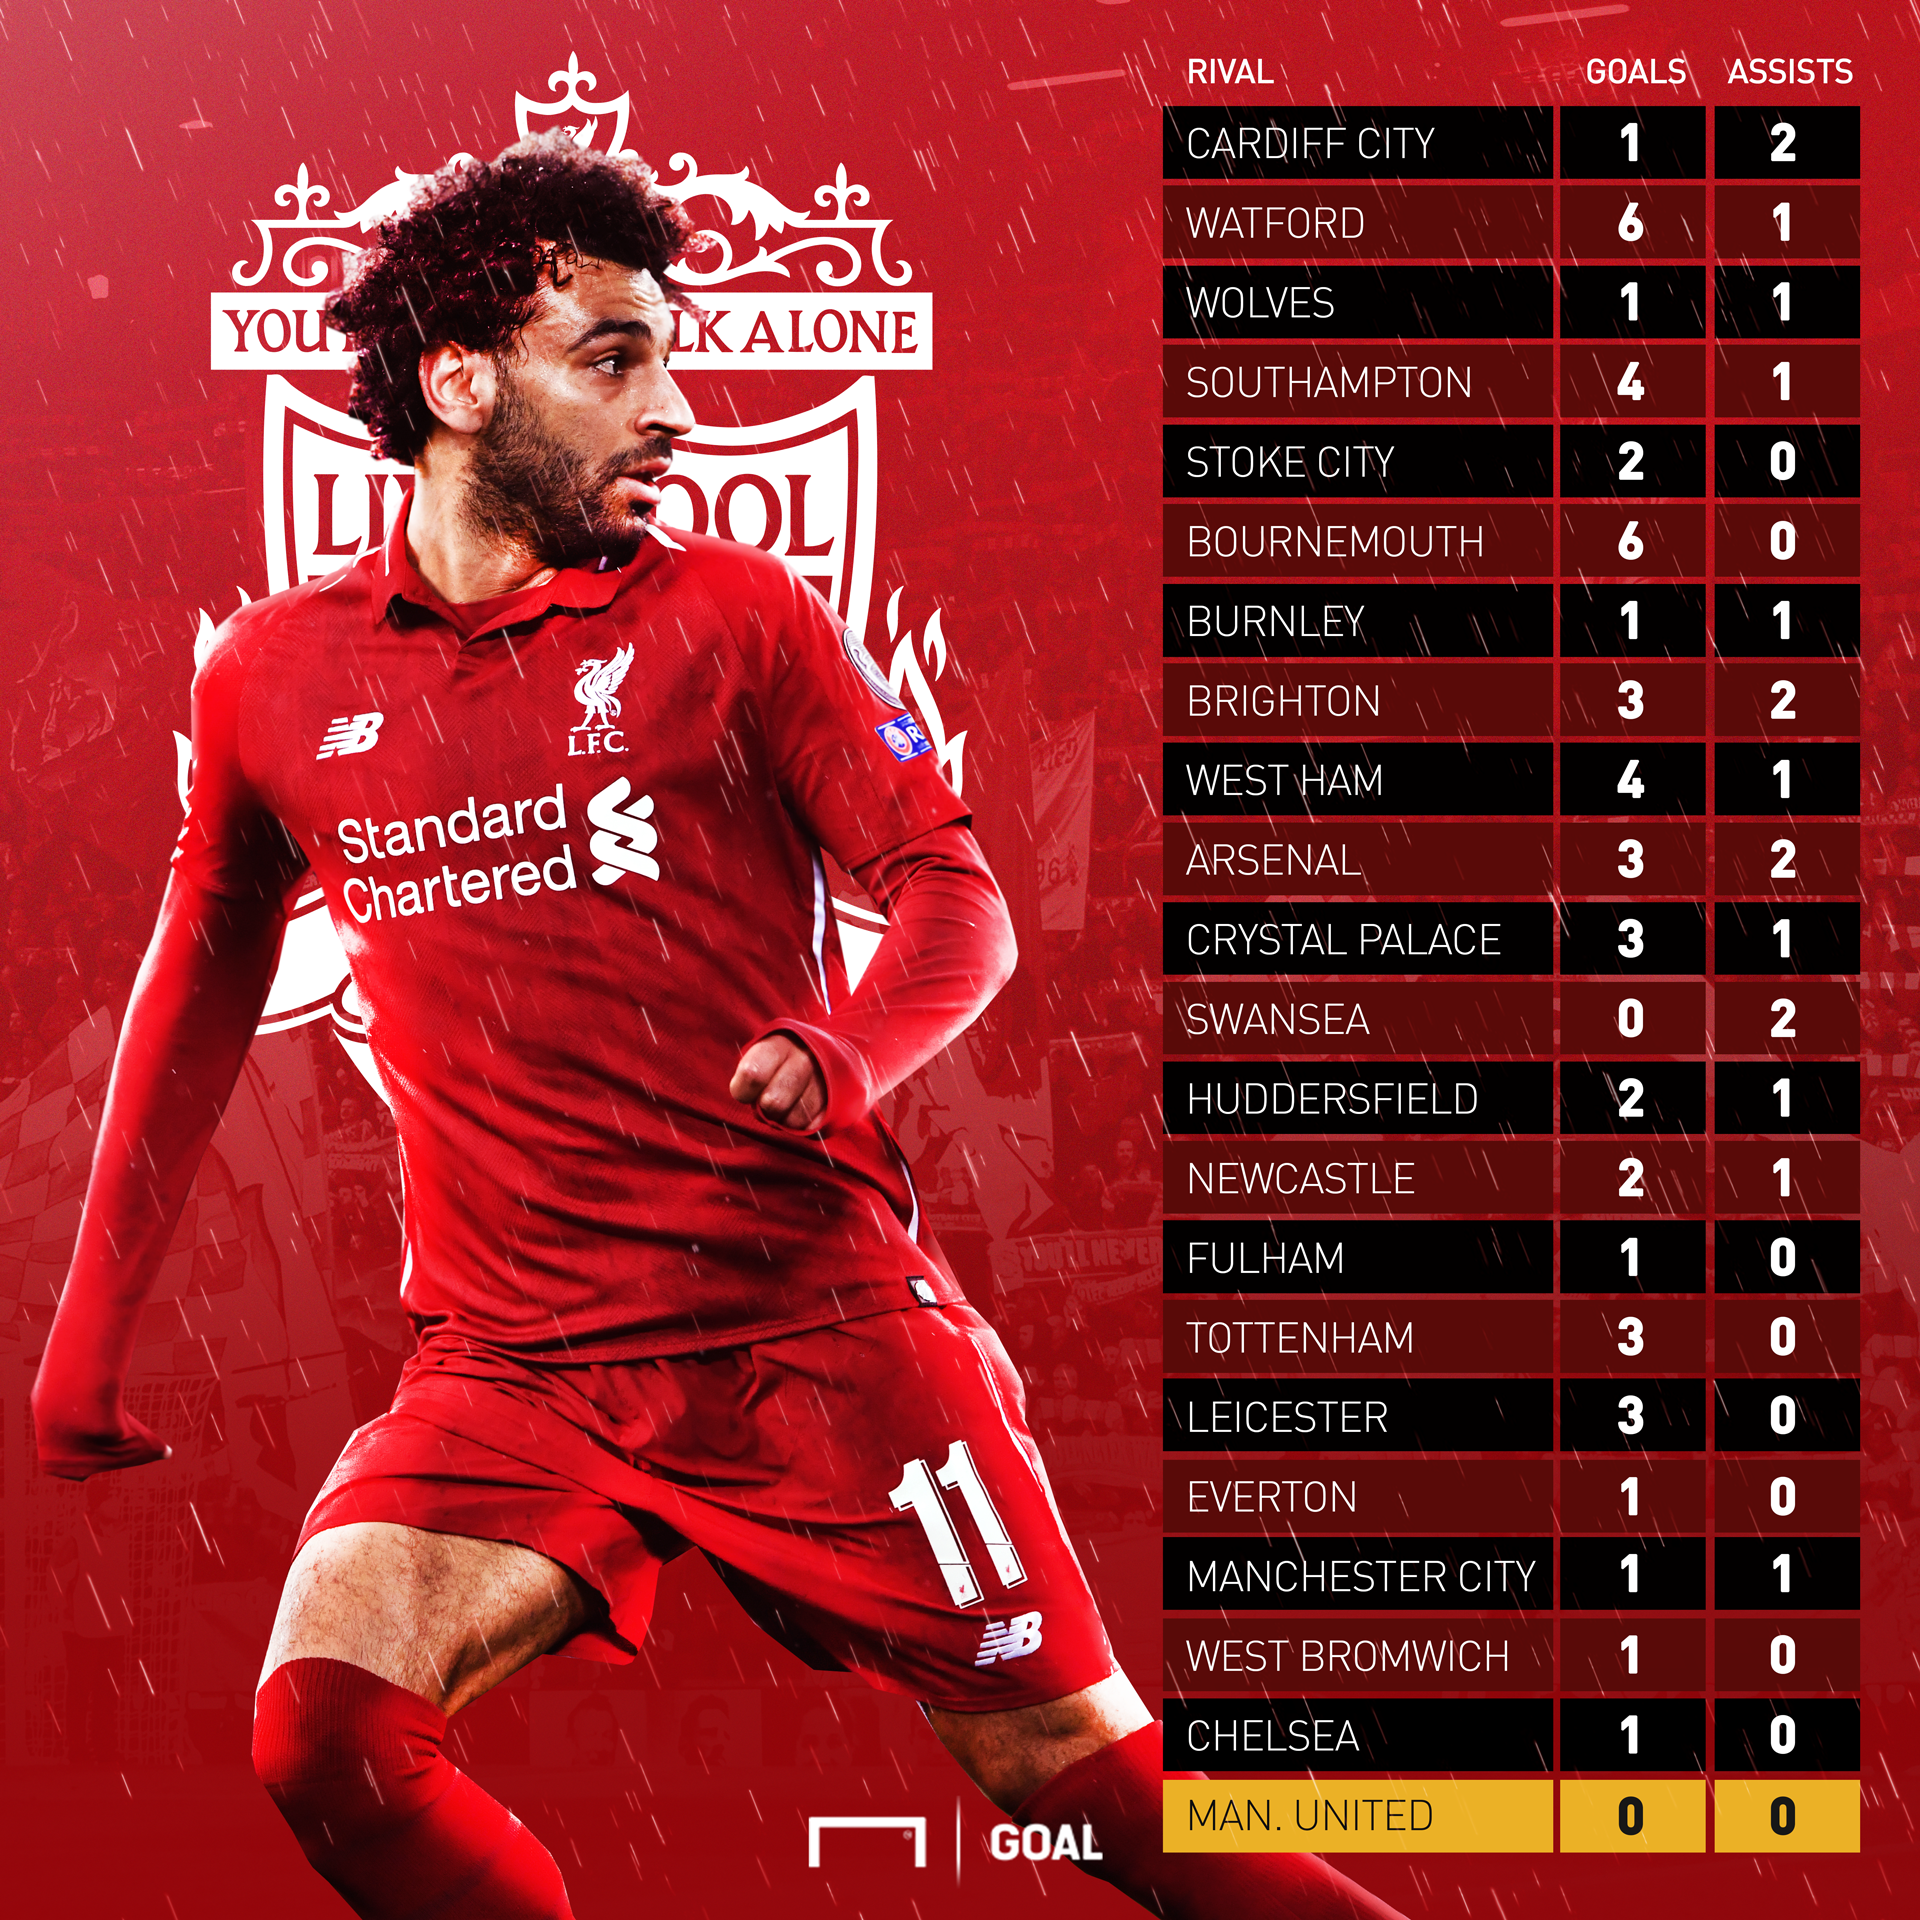 Mohamed Salah Goal/Assists Liverpool